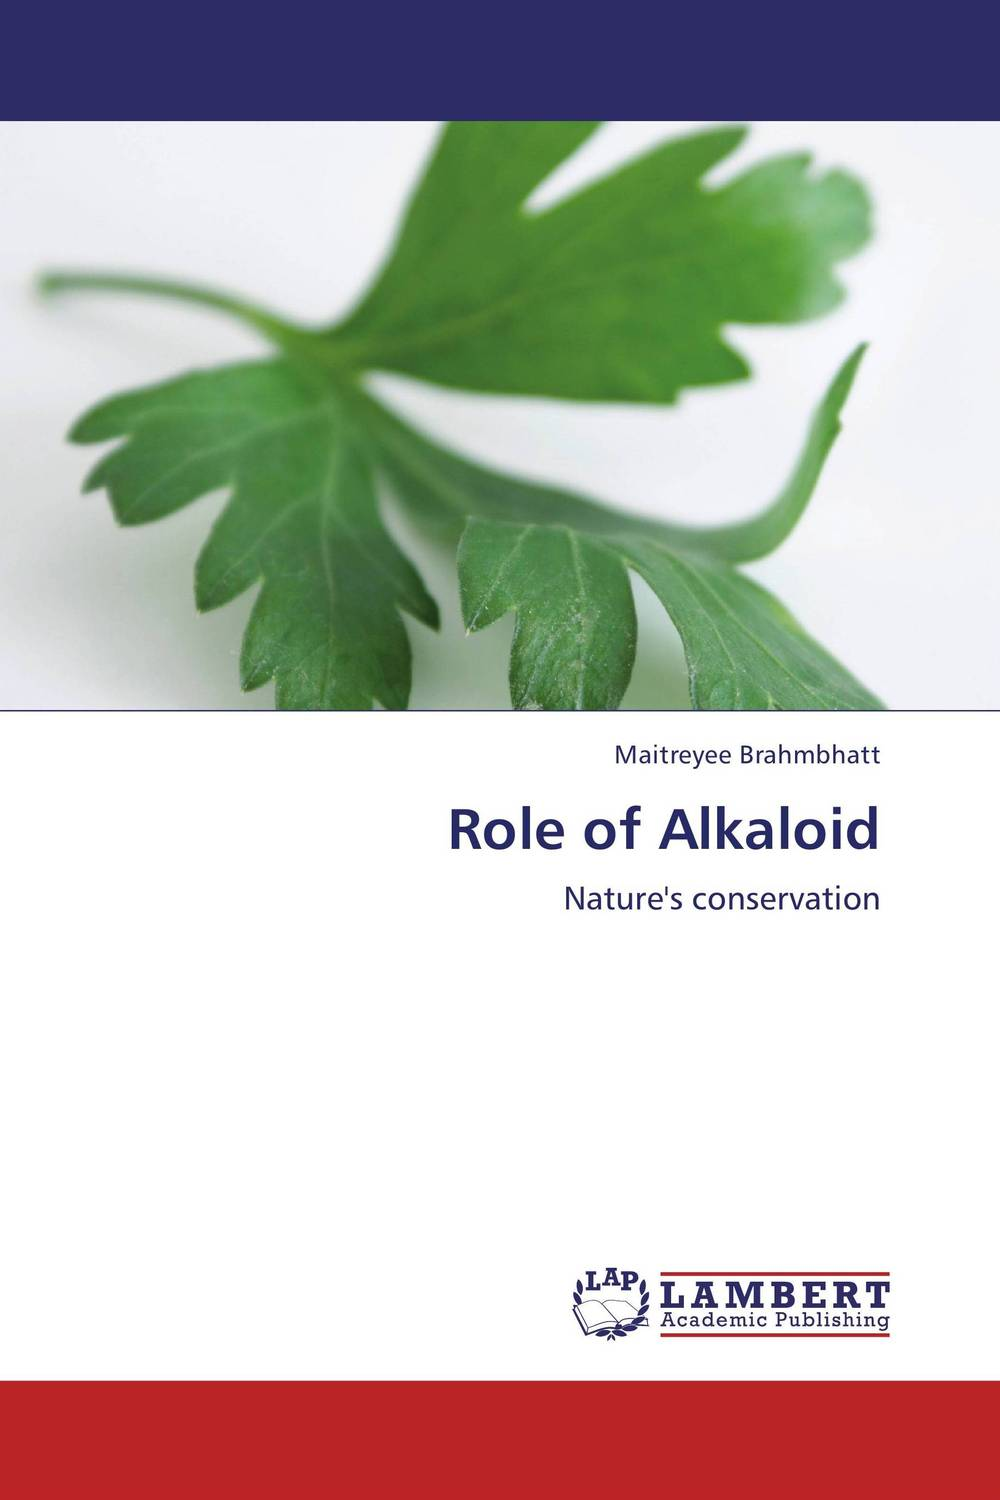 Role of Alkaloid seeing things as they are